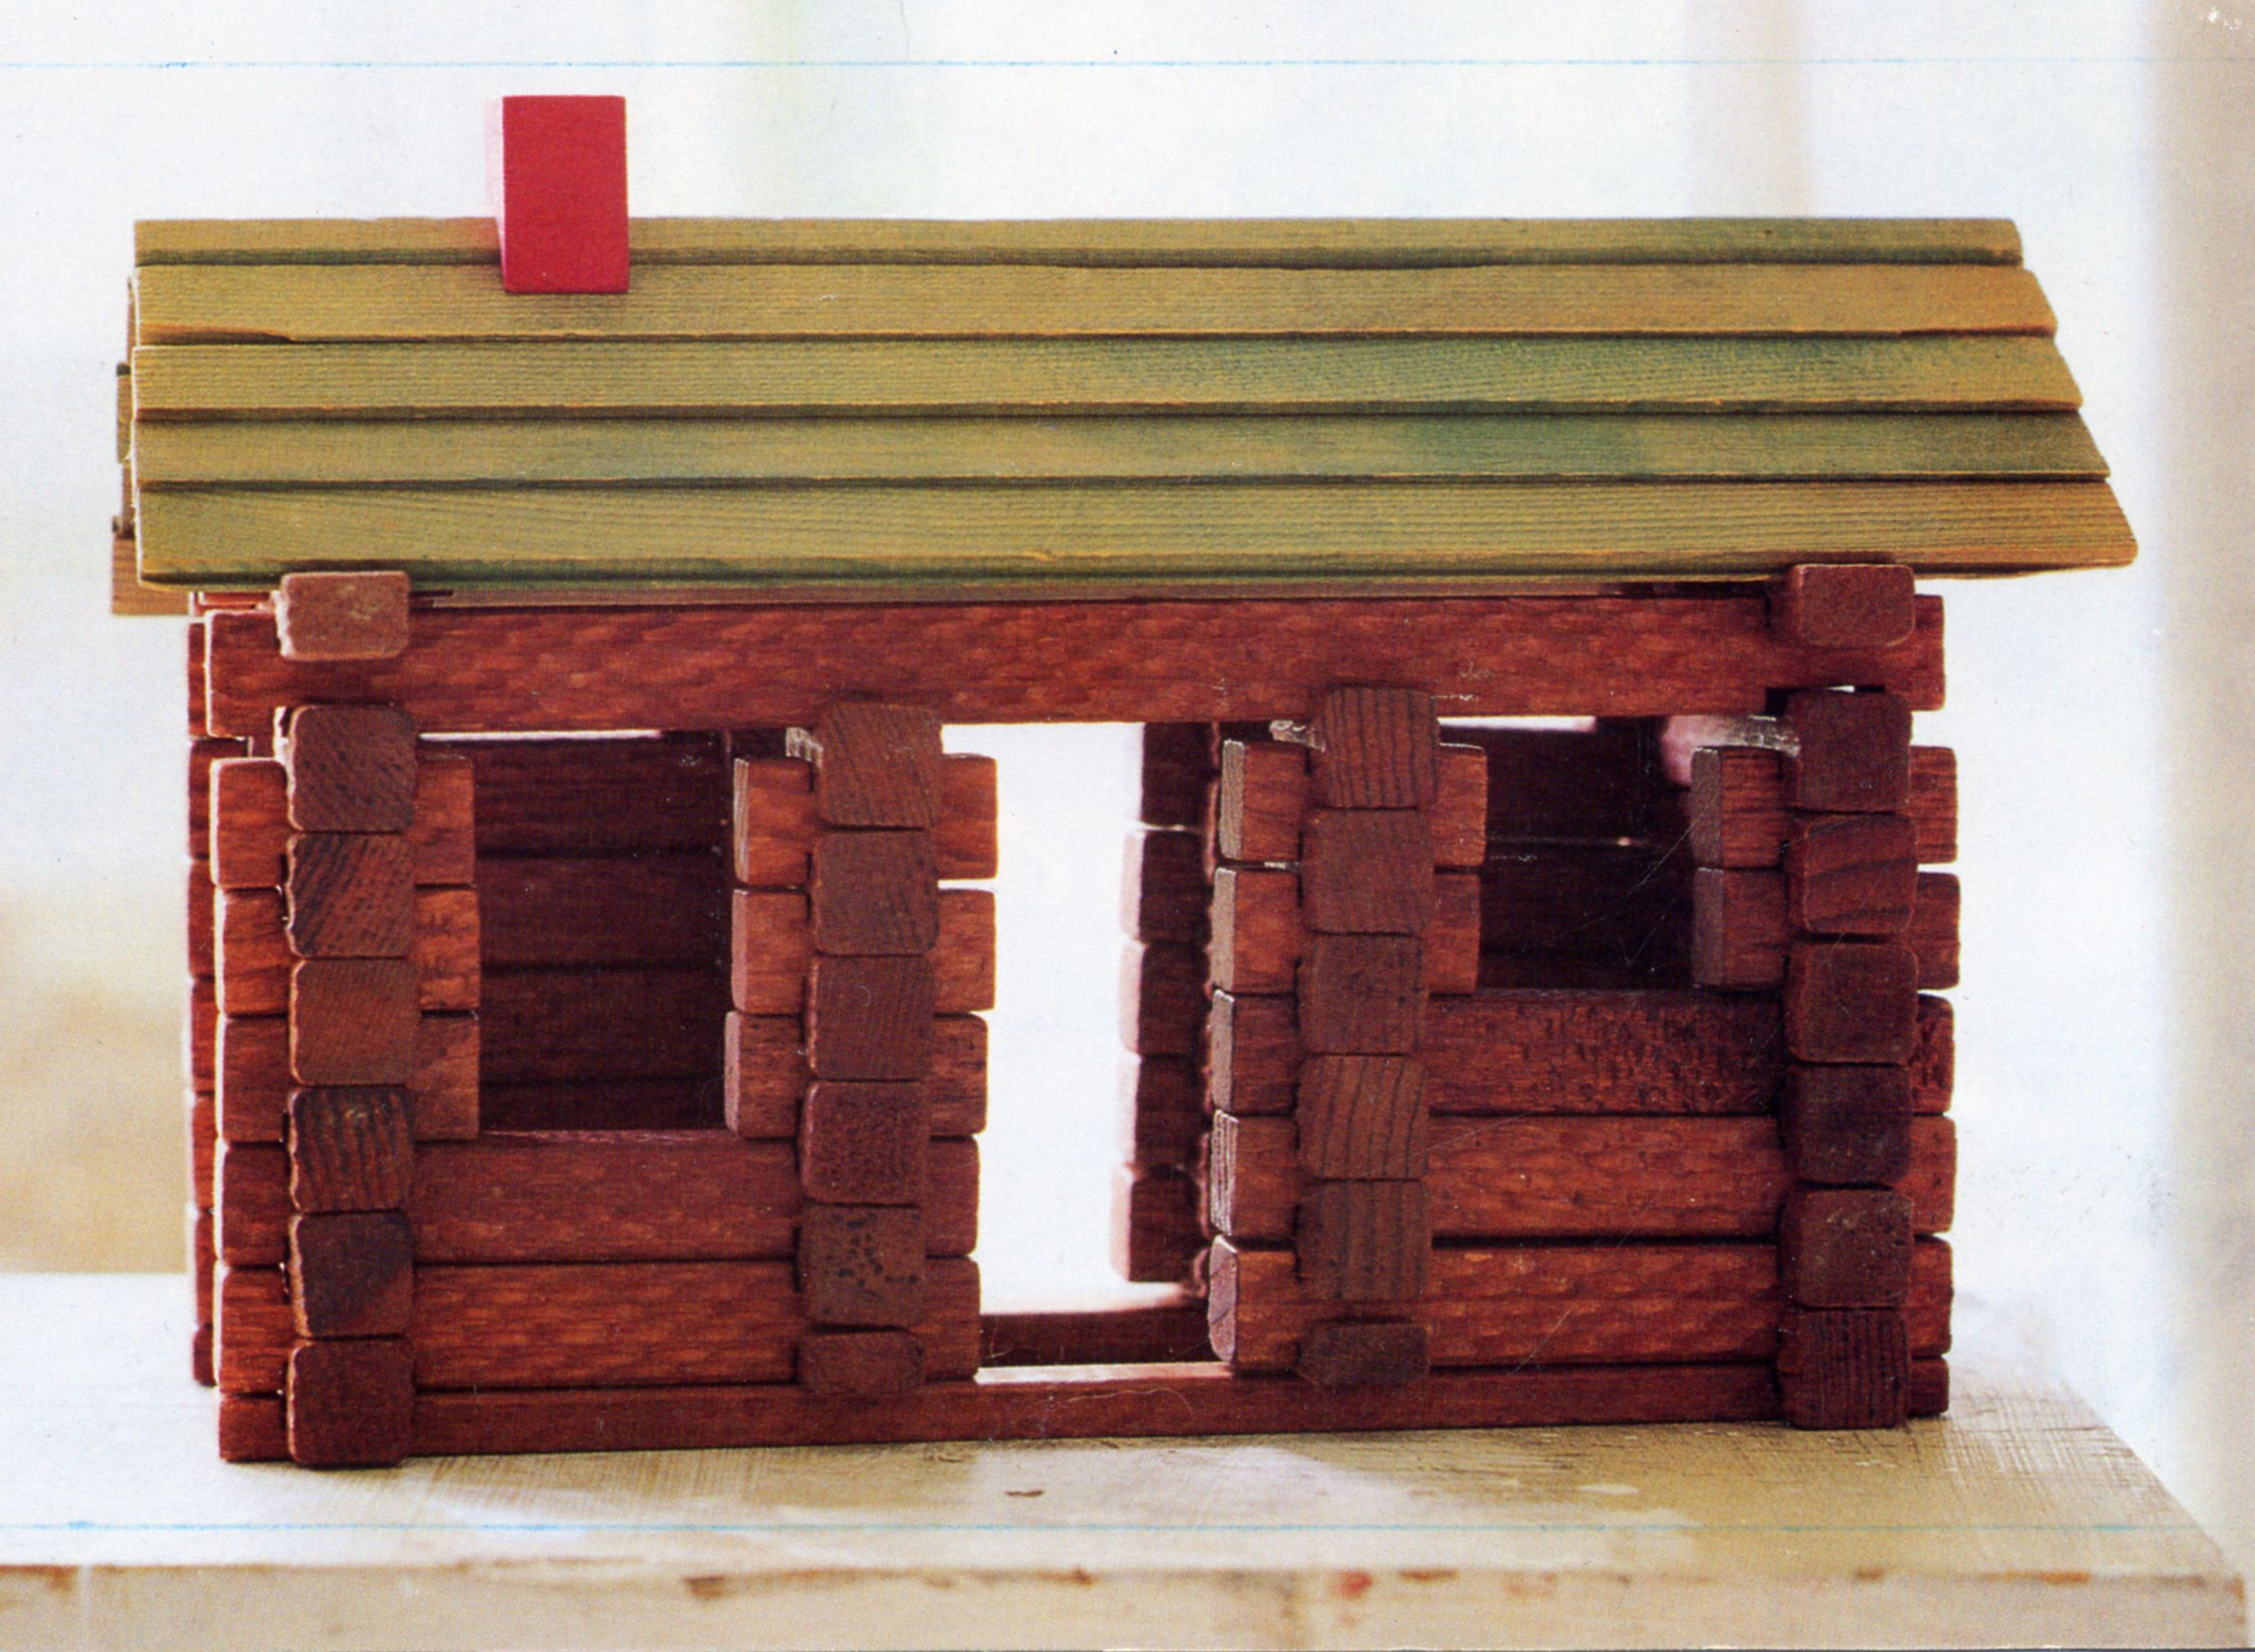 Very Impressive portraiture of LINCOLN LOG CABIN Back in the day Pinterest with #A02B31 color and 2700x1978 pixels